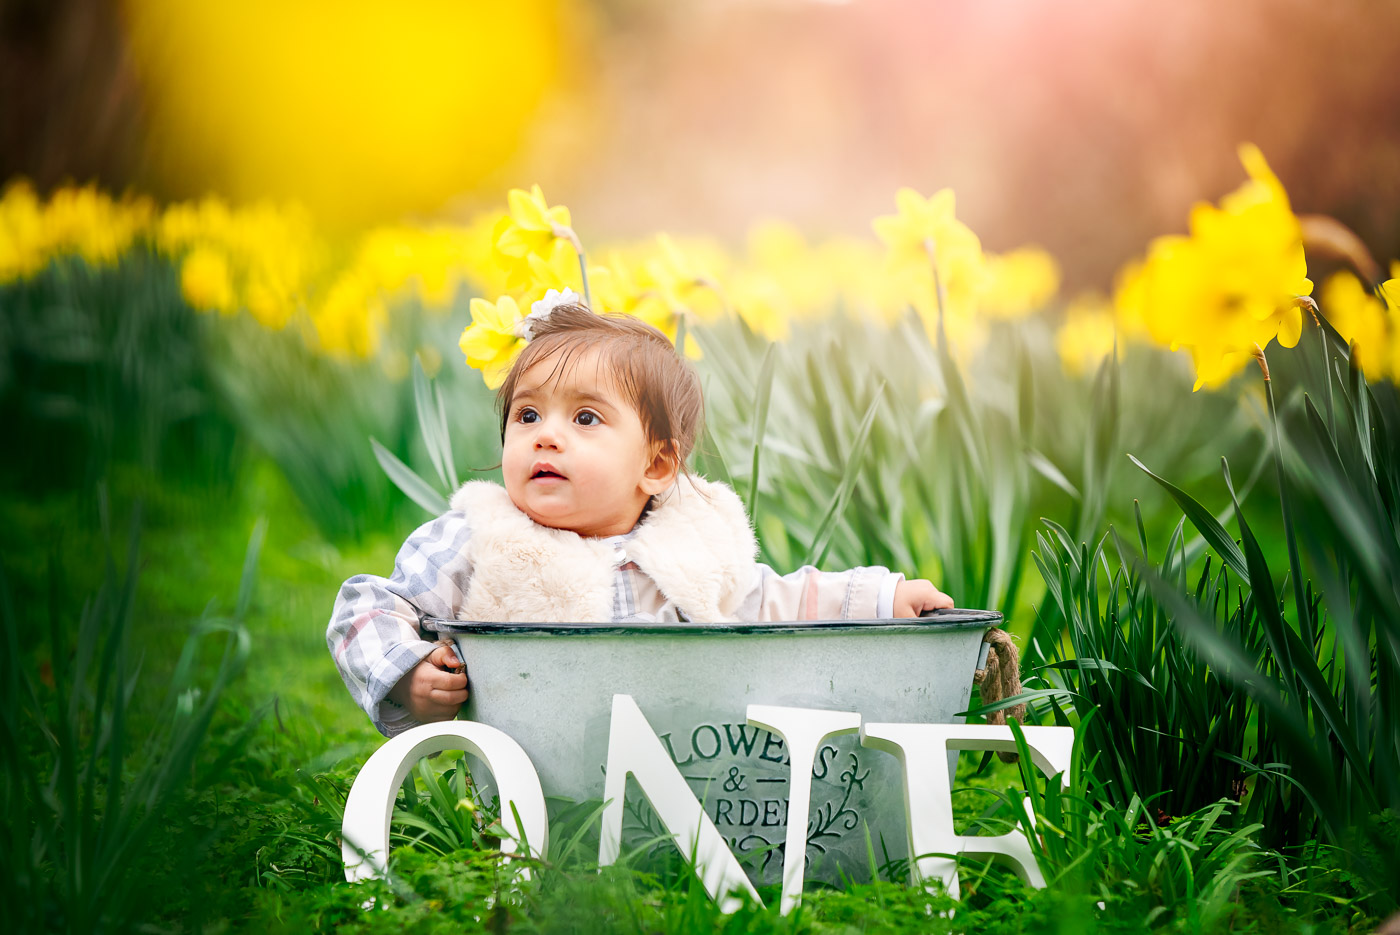 Little girl in a flower bucket among daffodils is turning one